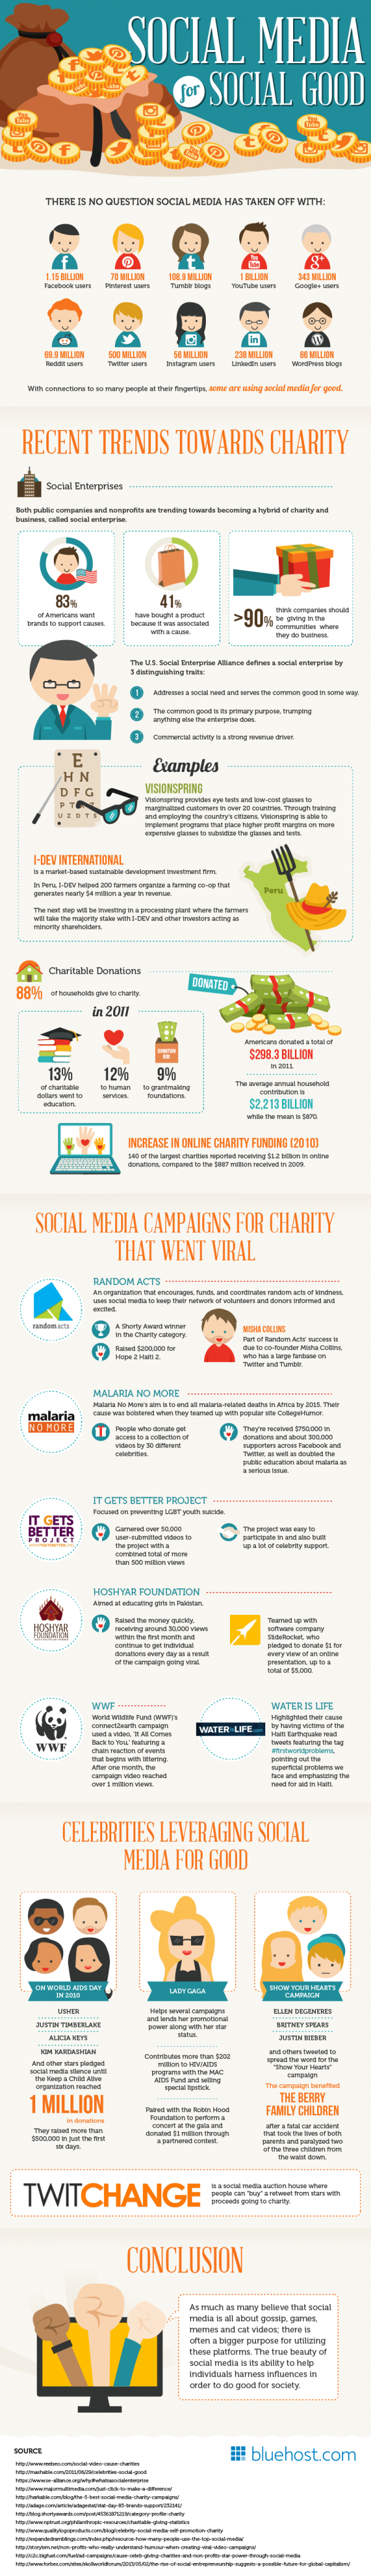 social-media-for-social-good-infographic-e1381861803955